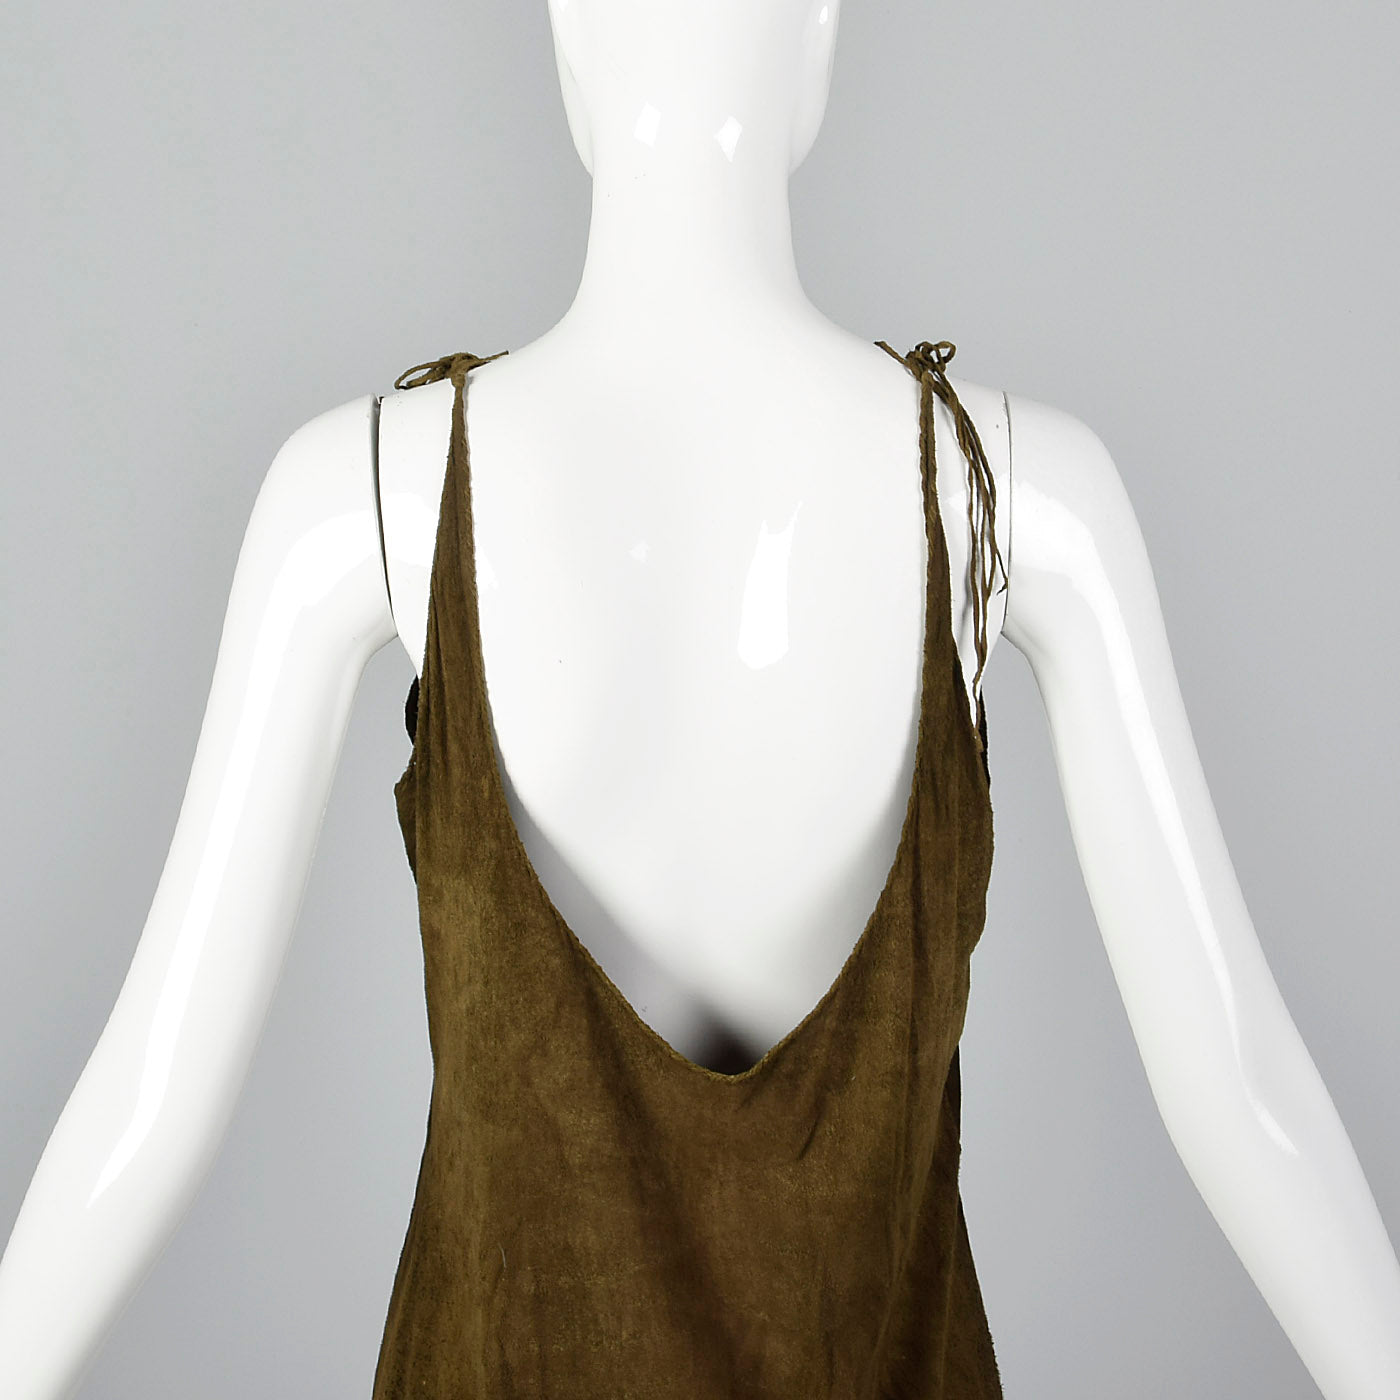 1970s Brown Suede Sheath Dress